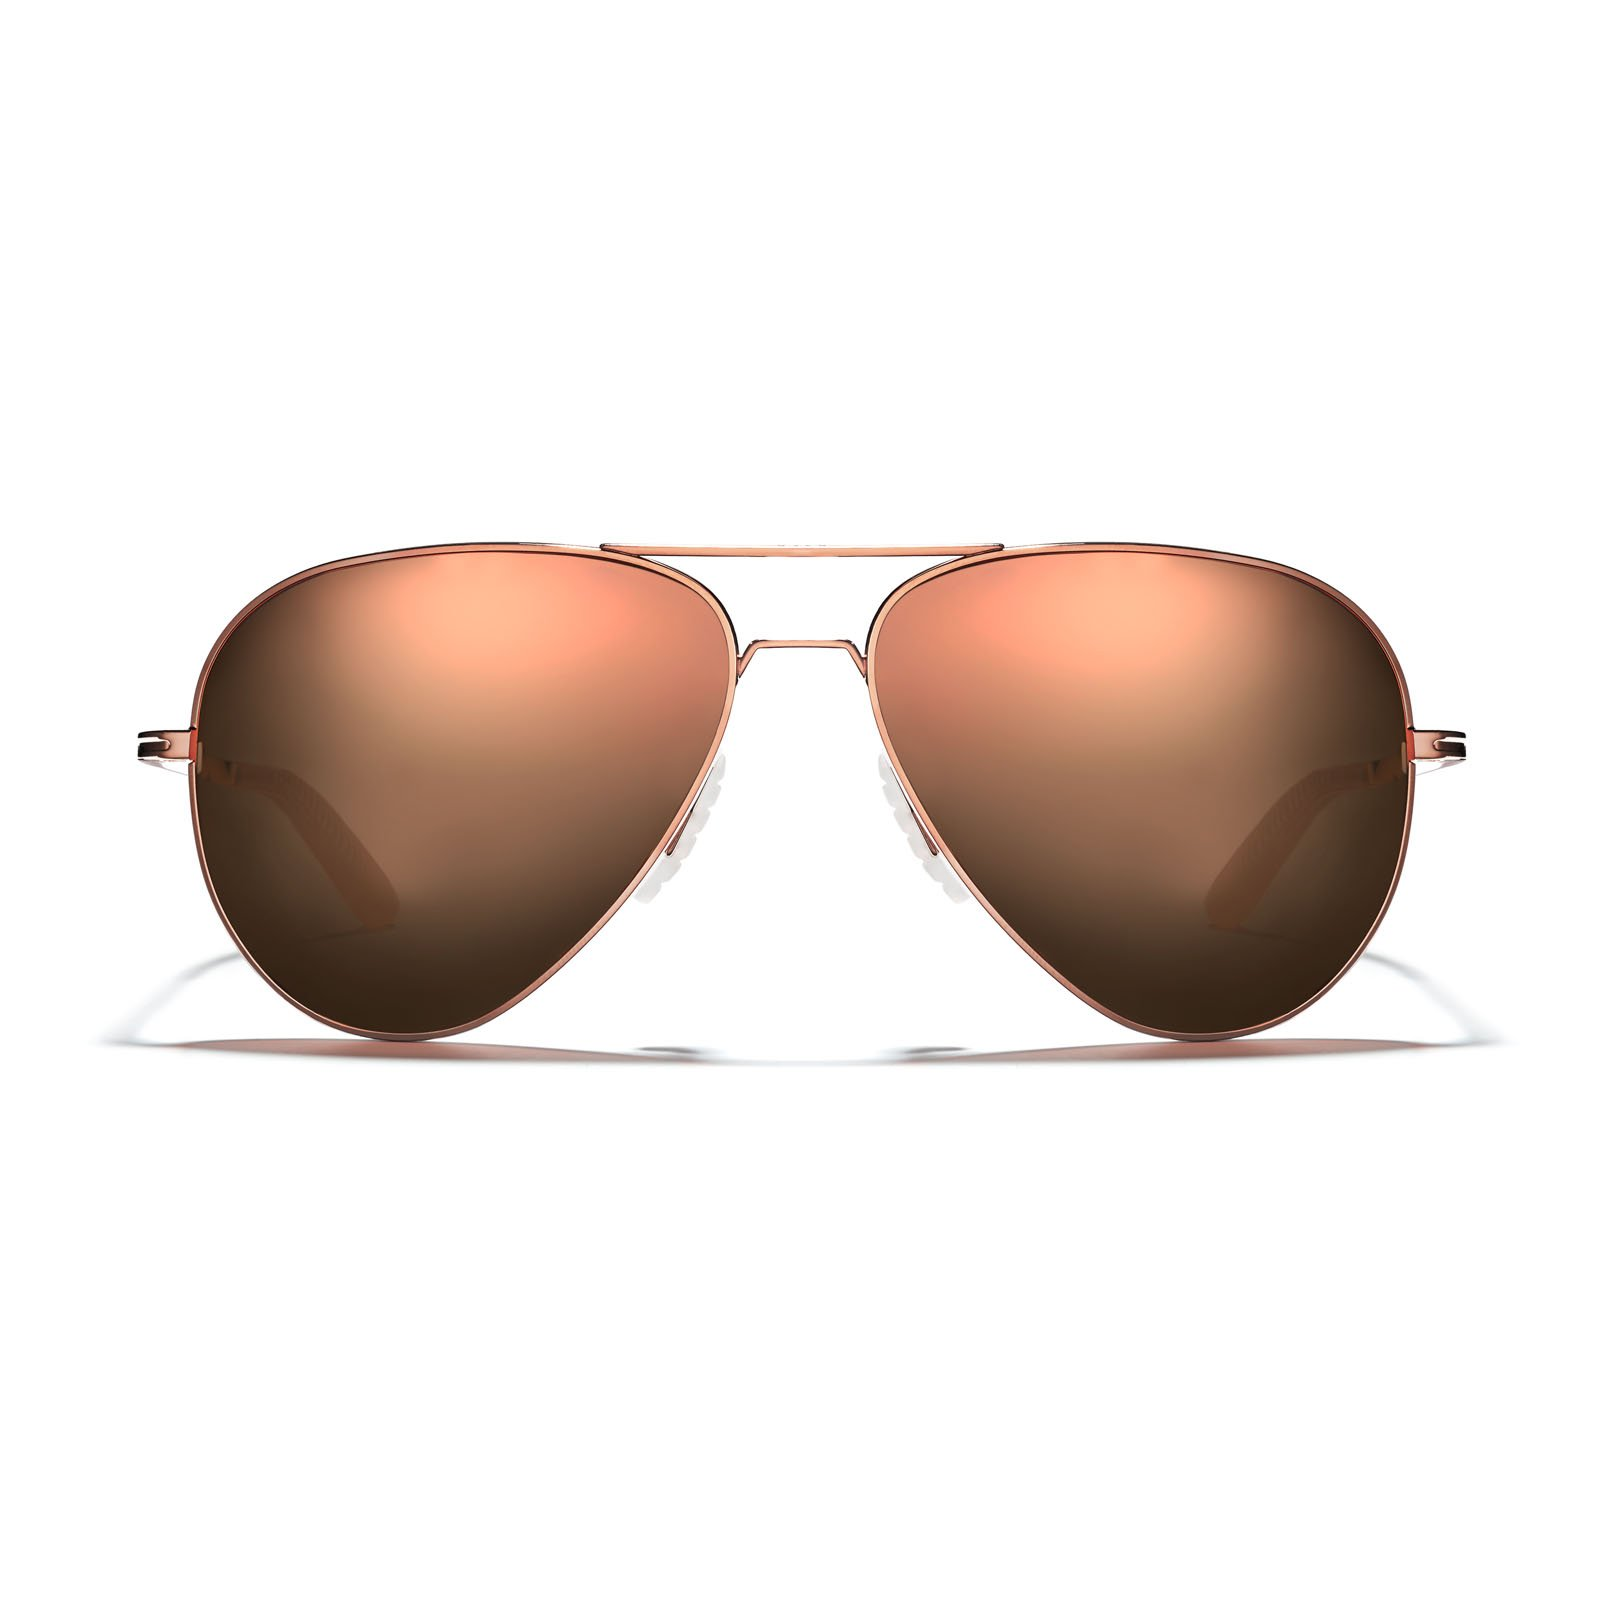 Roka Sunglasses bridge design and function.